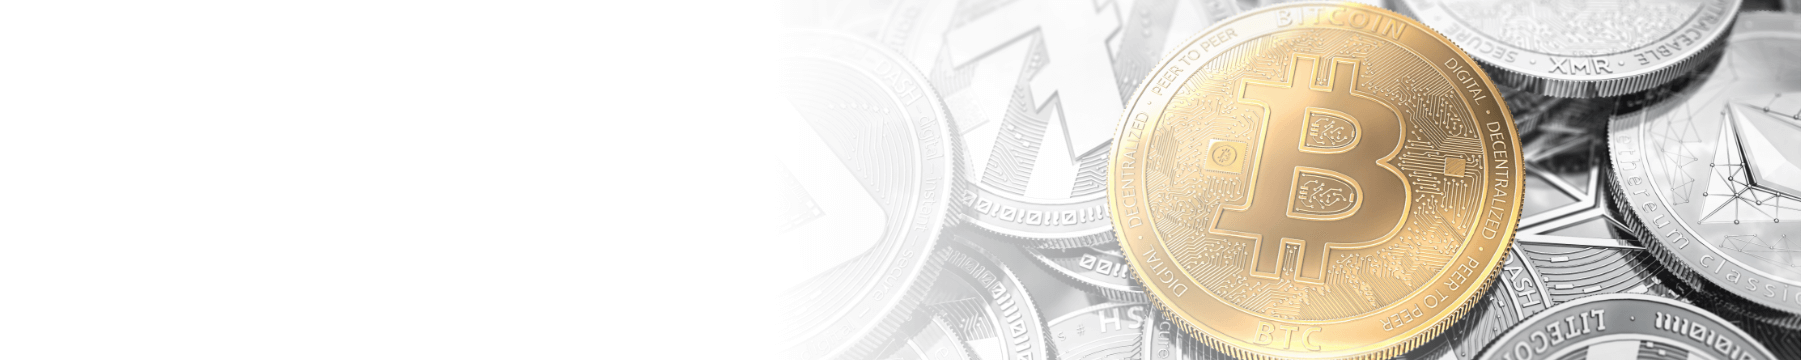 Bitcoin token atop a stack of pile of other crytpo tokens